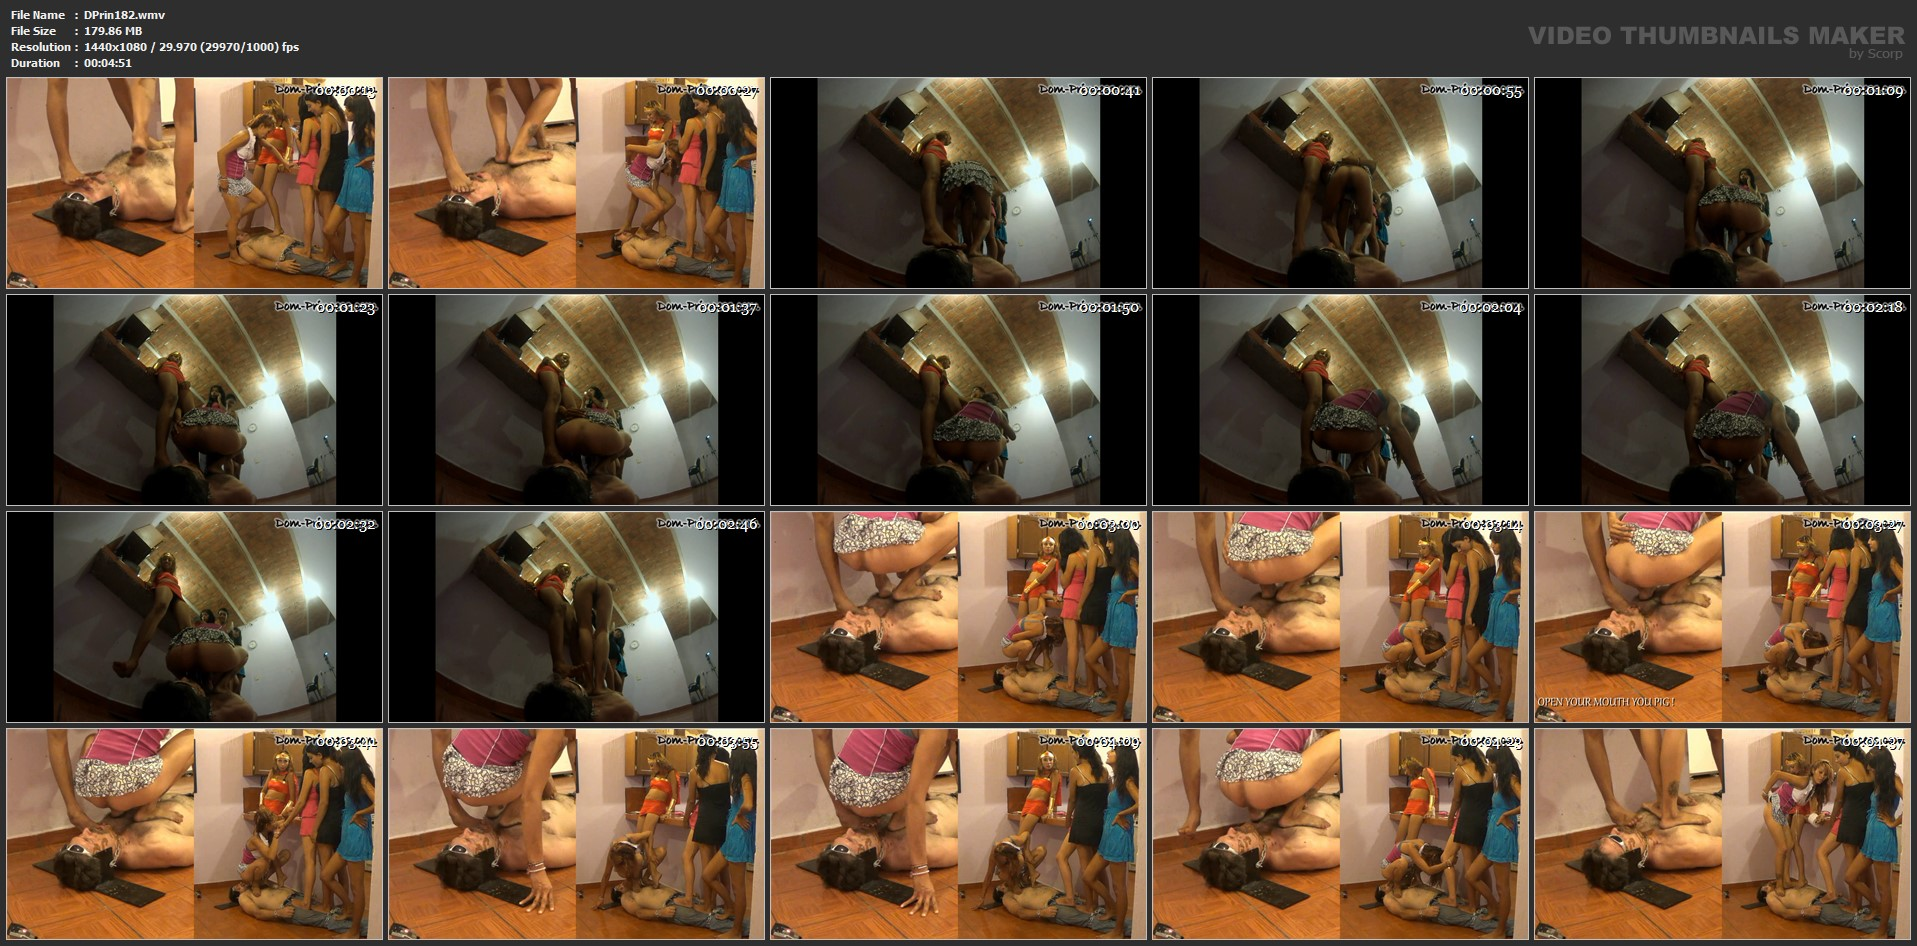 [DOM-PRINCESS] The Stand on Poop Session Part 2 Christine [FULL HD][1080p][WMV]